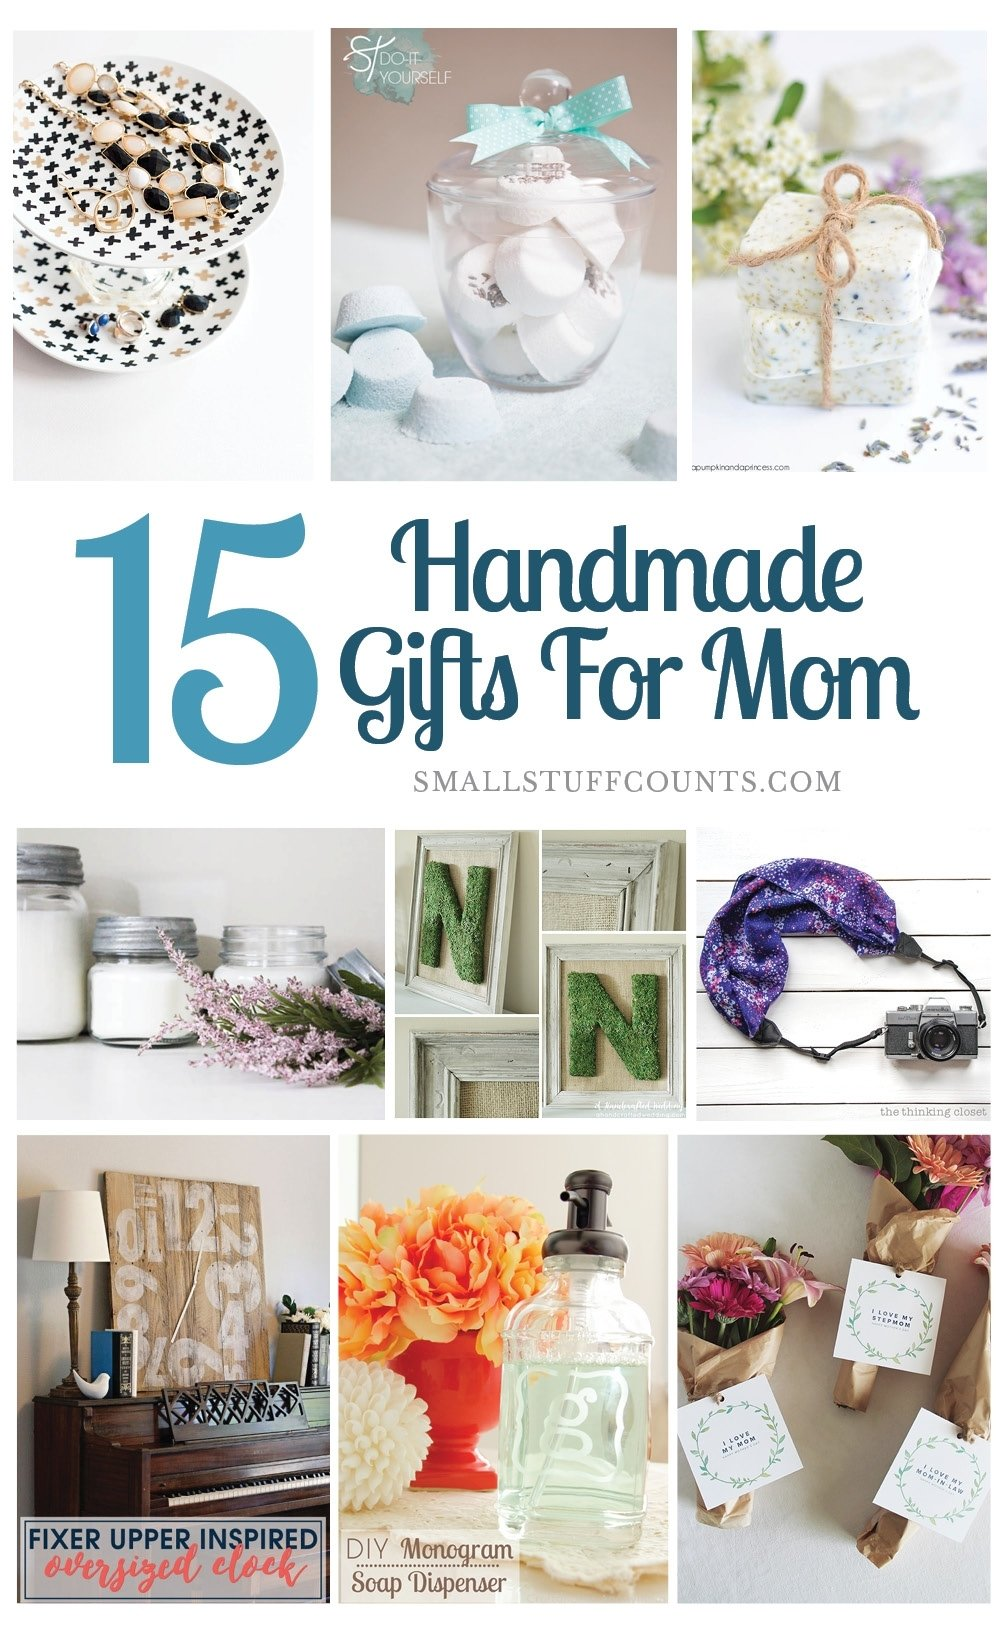 10 Amazing Birthday Gifts Ideas For Mom beautiful diy gift ideas for mom 2020